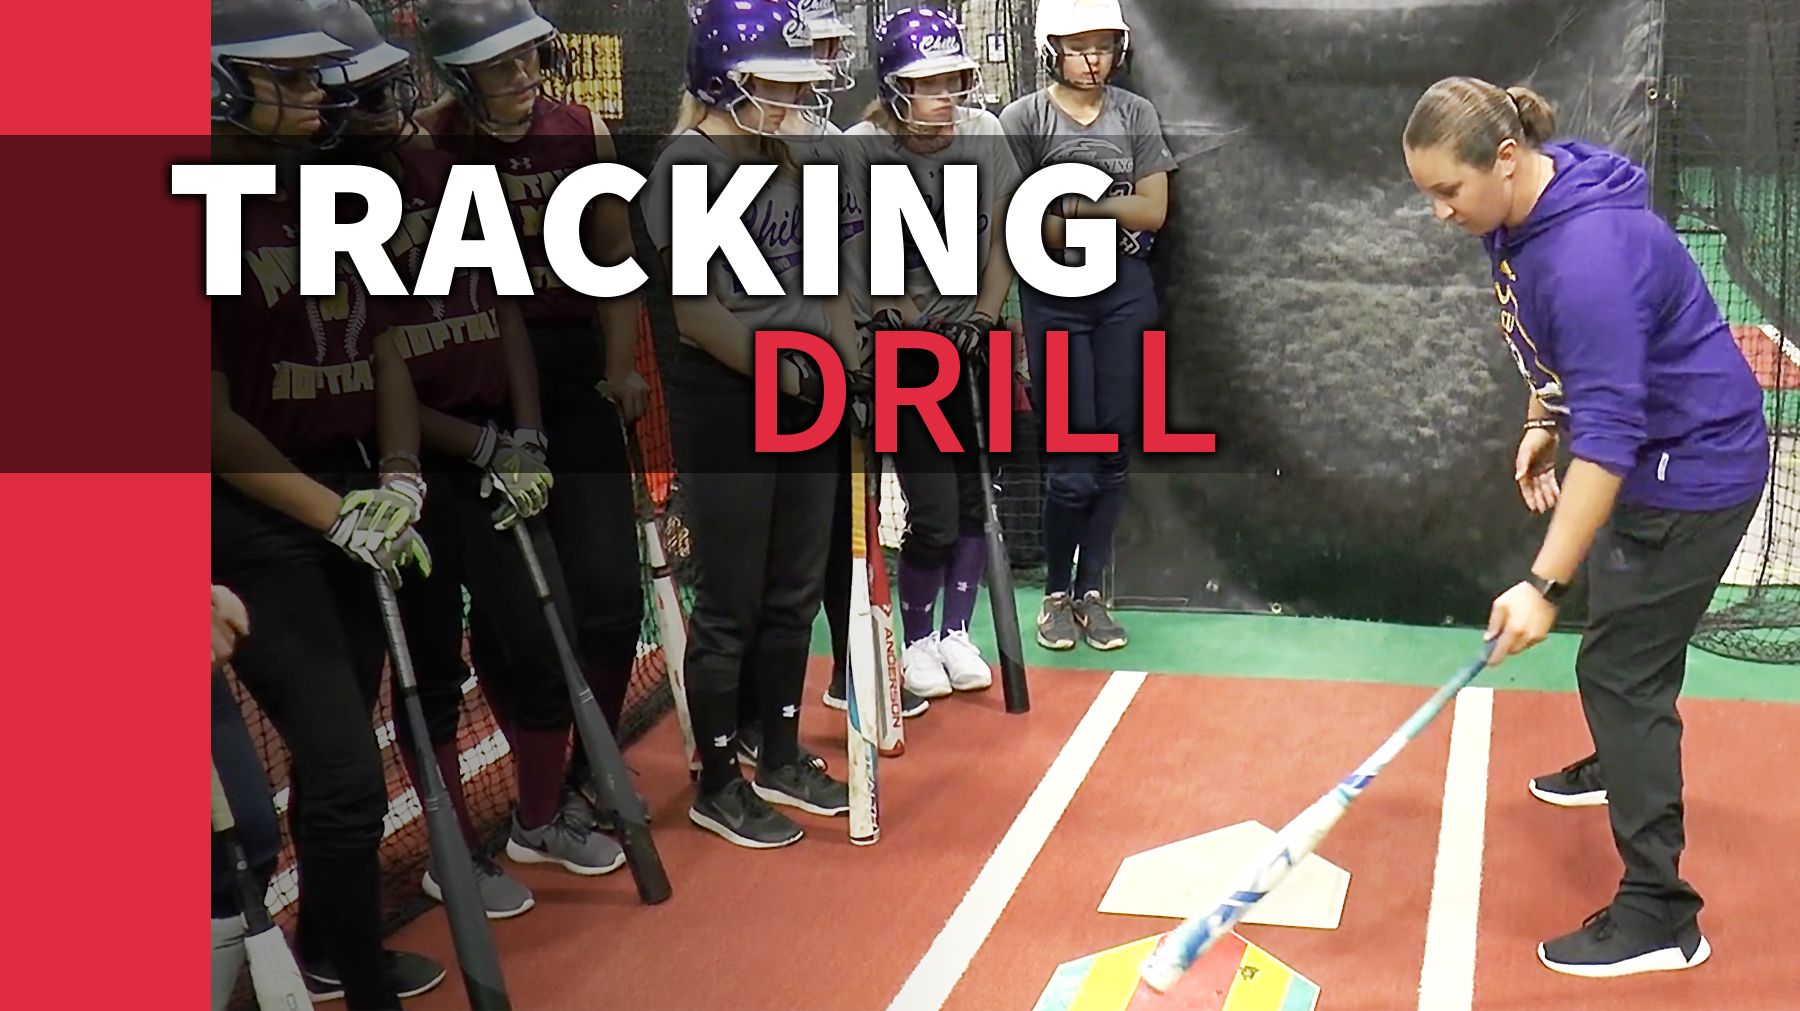 Hitting Tracking Drill The Art Of Coaching Softball Softball Coach Softball Hitting Practice Softball Drills